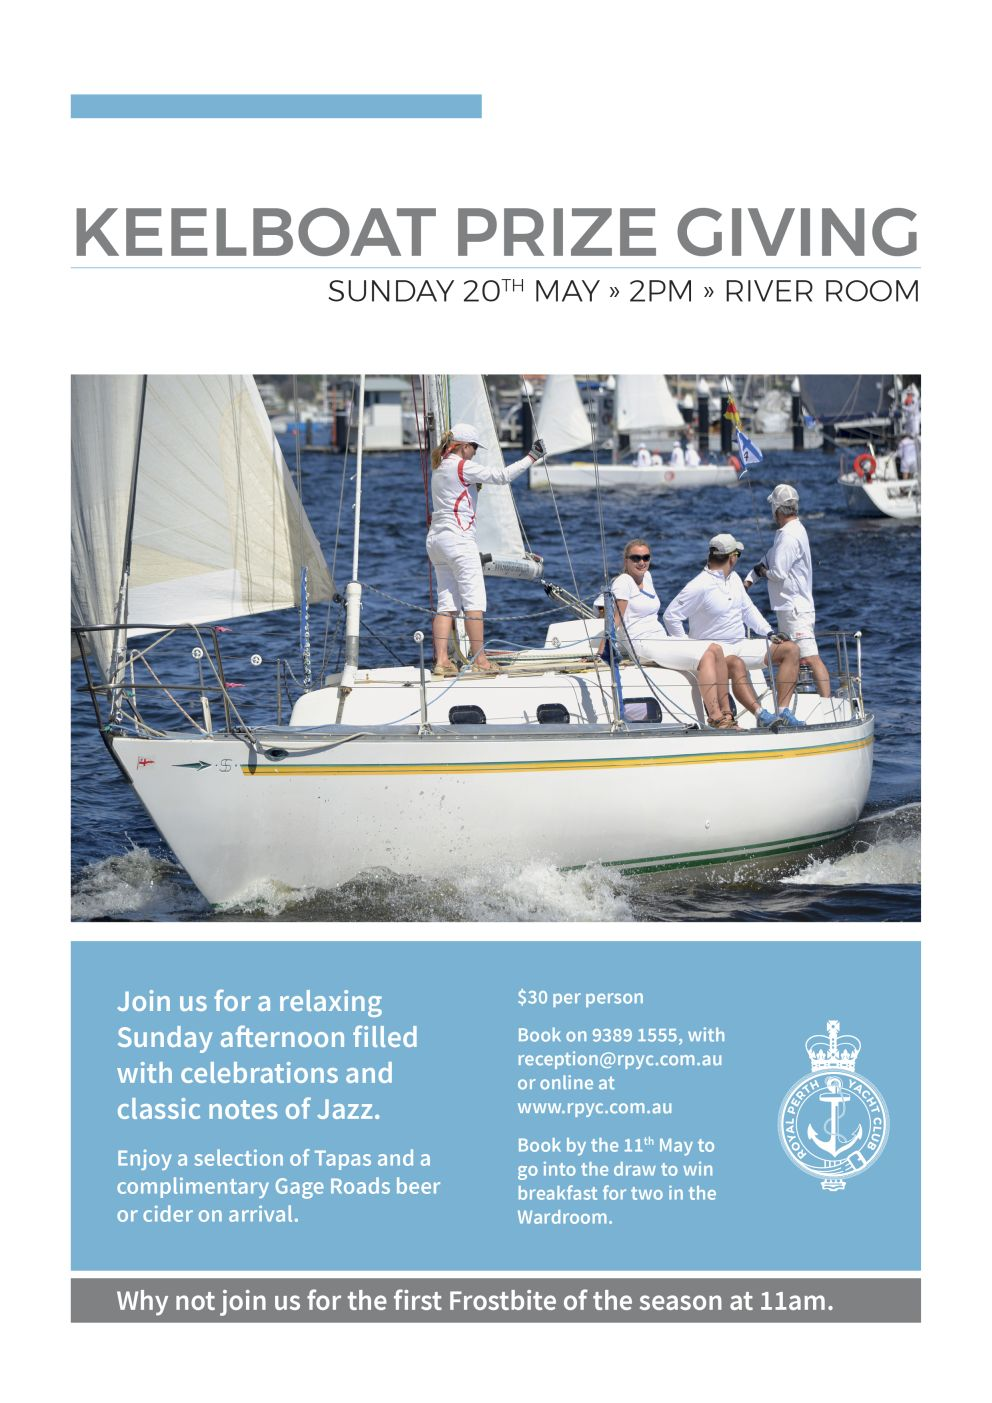 ITW April 2018 Keelboat prize night